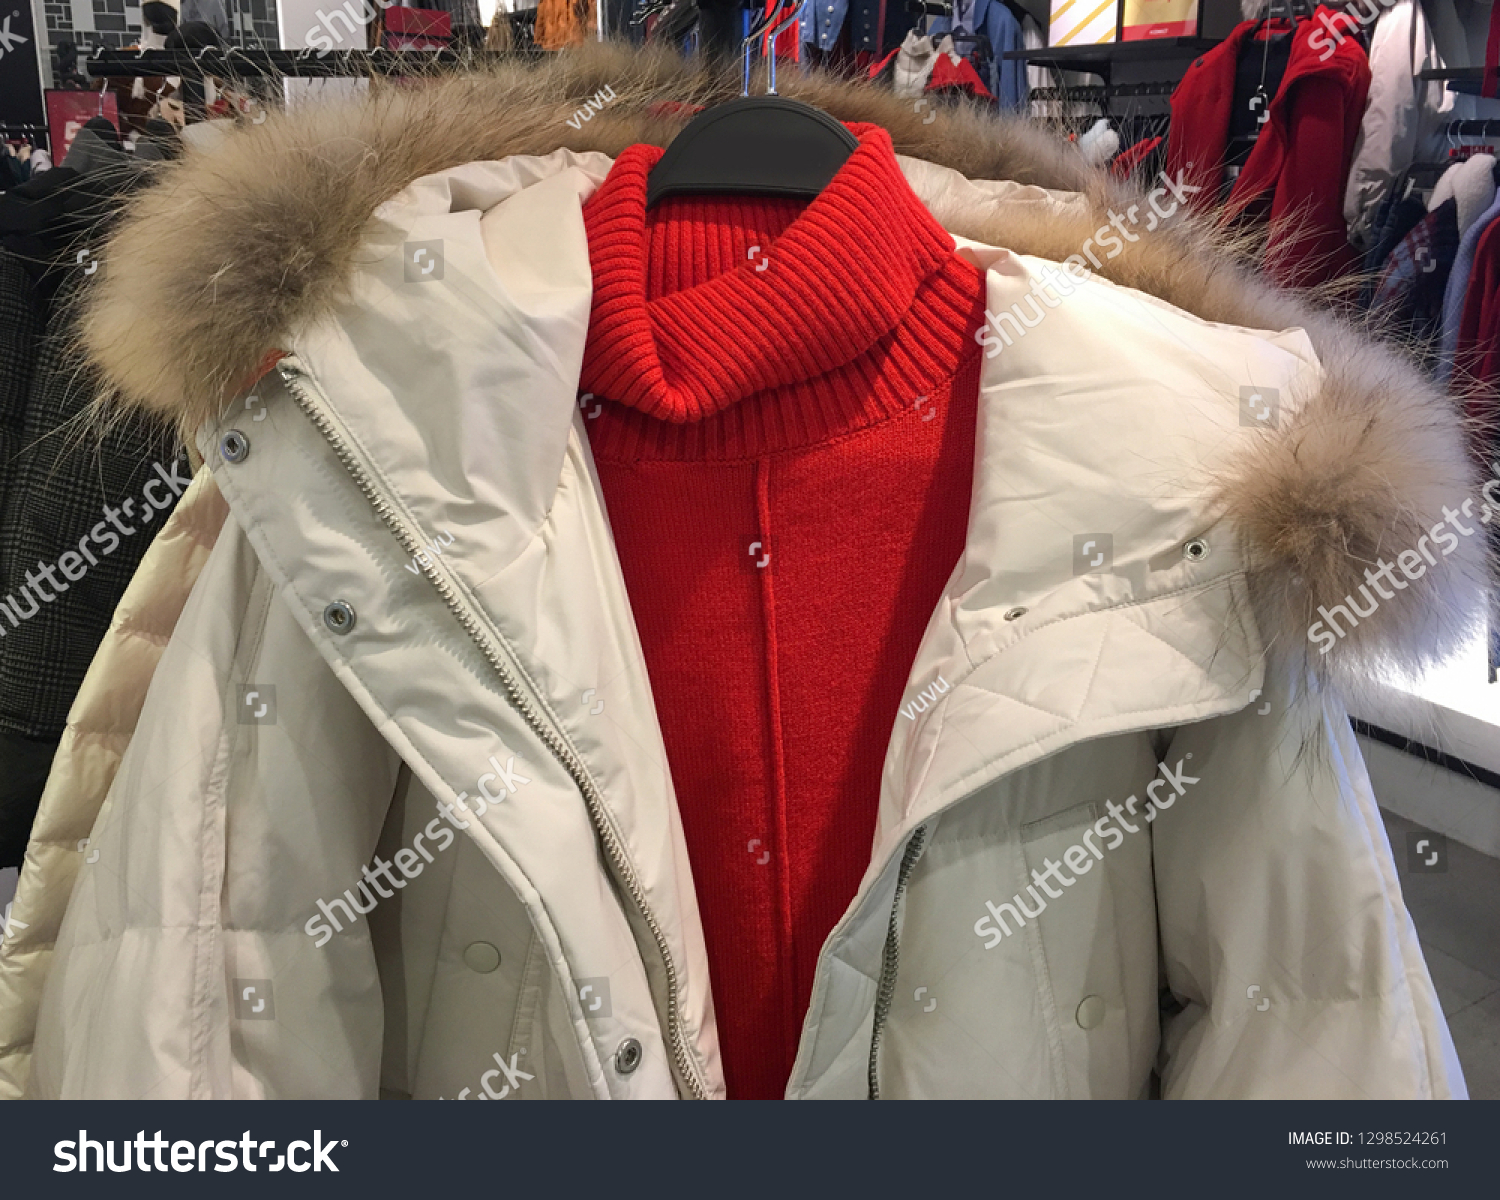 b716bf61c Jacket Winter Sale On Clothes Rack Stock Photo (Edit Now) 1298524261 ...